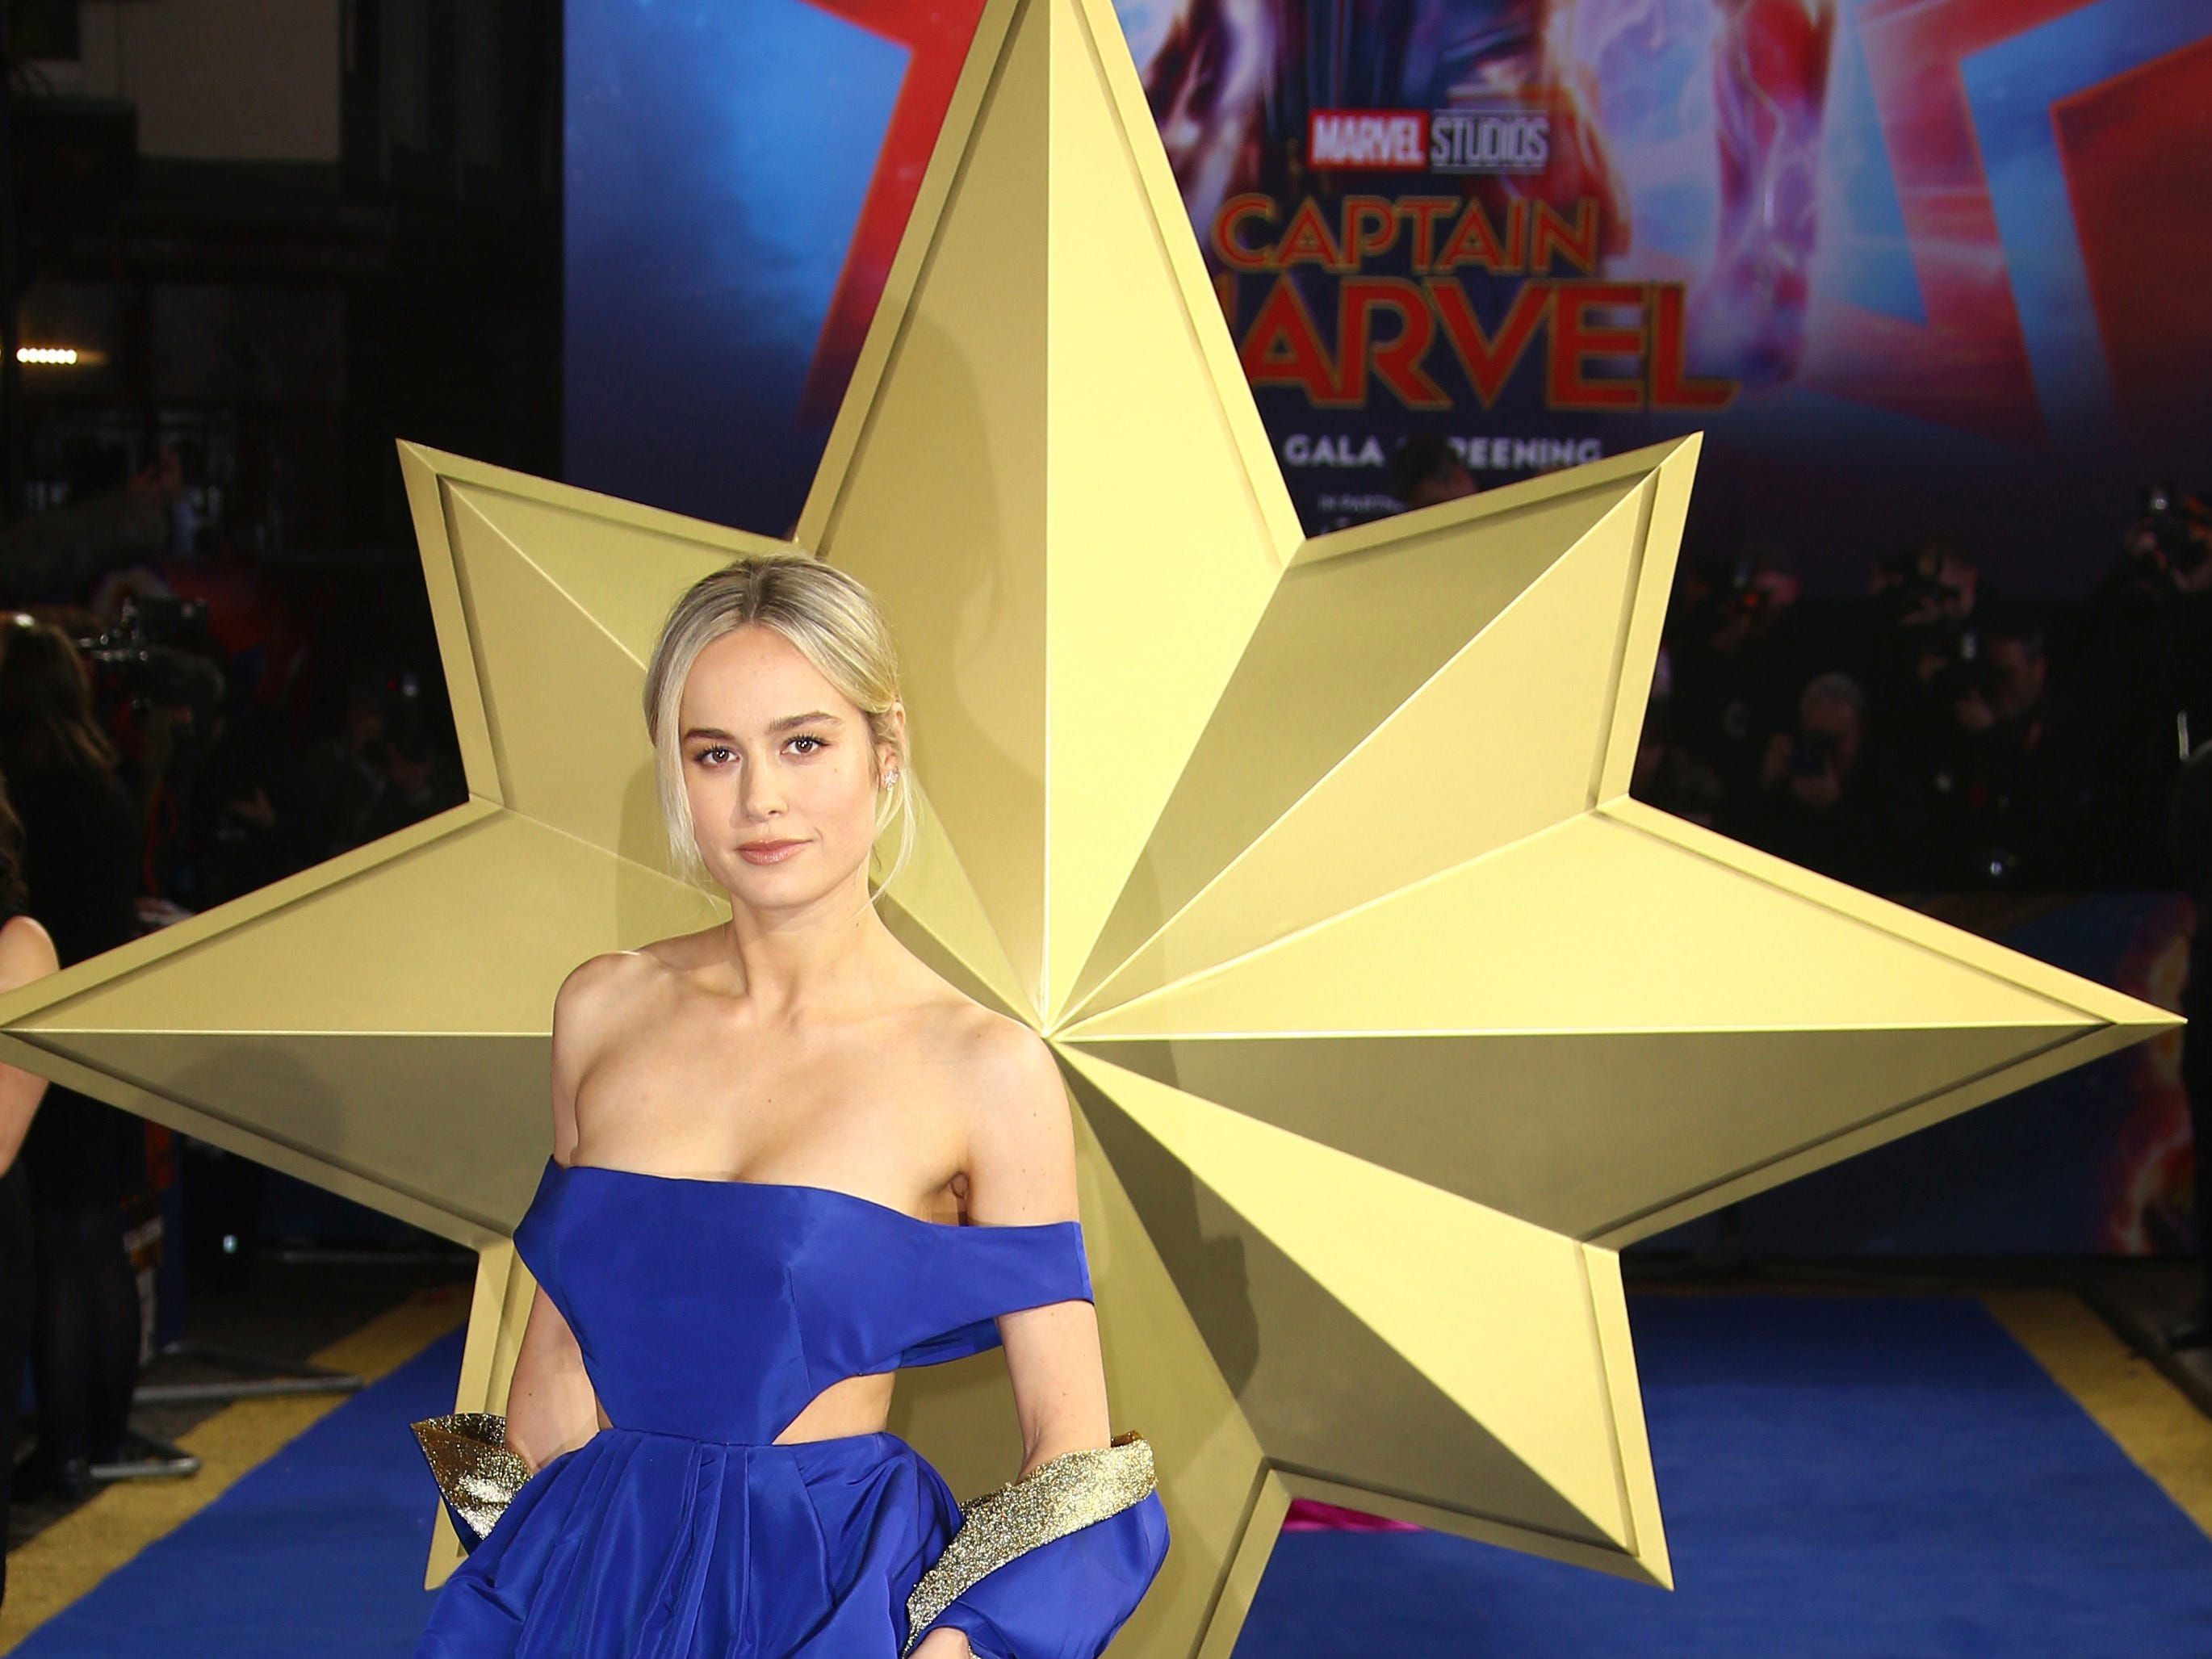 Actress Brie Larson poses for photographers upon arrival at the European Gala of Captain Marvel at a central London cinema, Wednesday, Feb. 27, 2019.